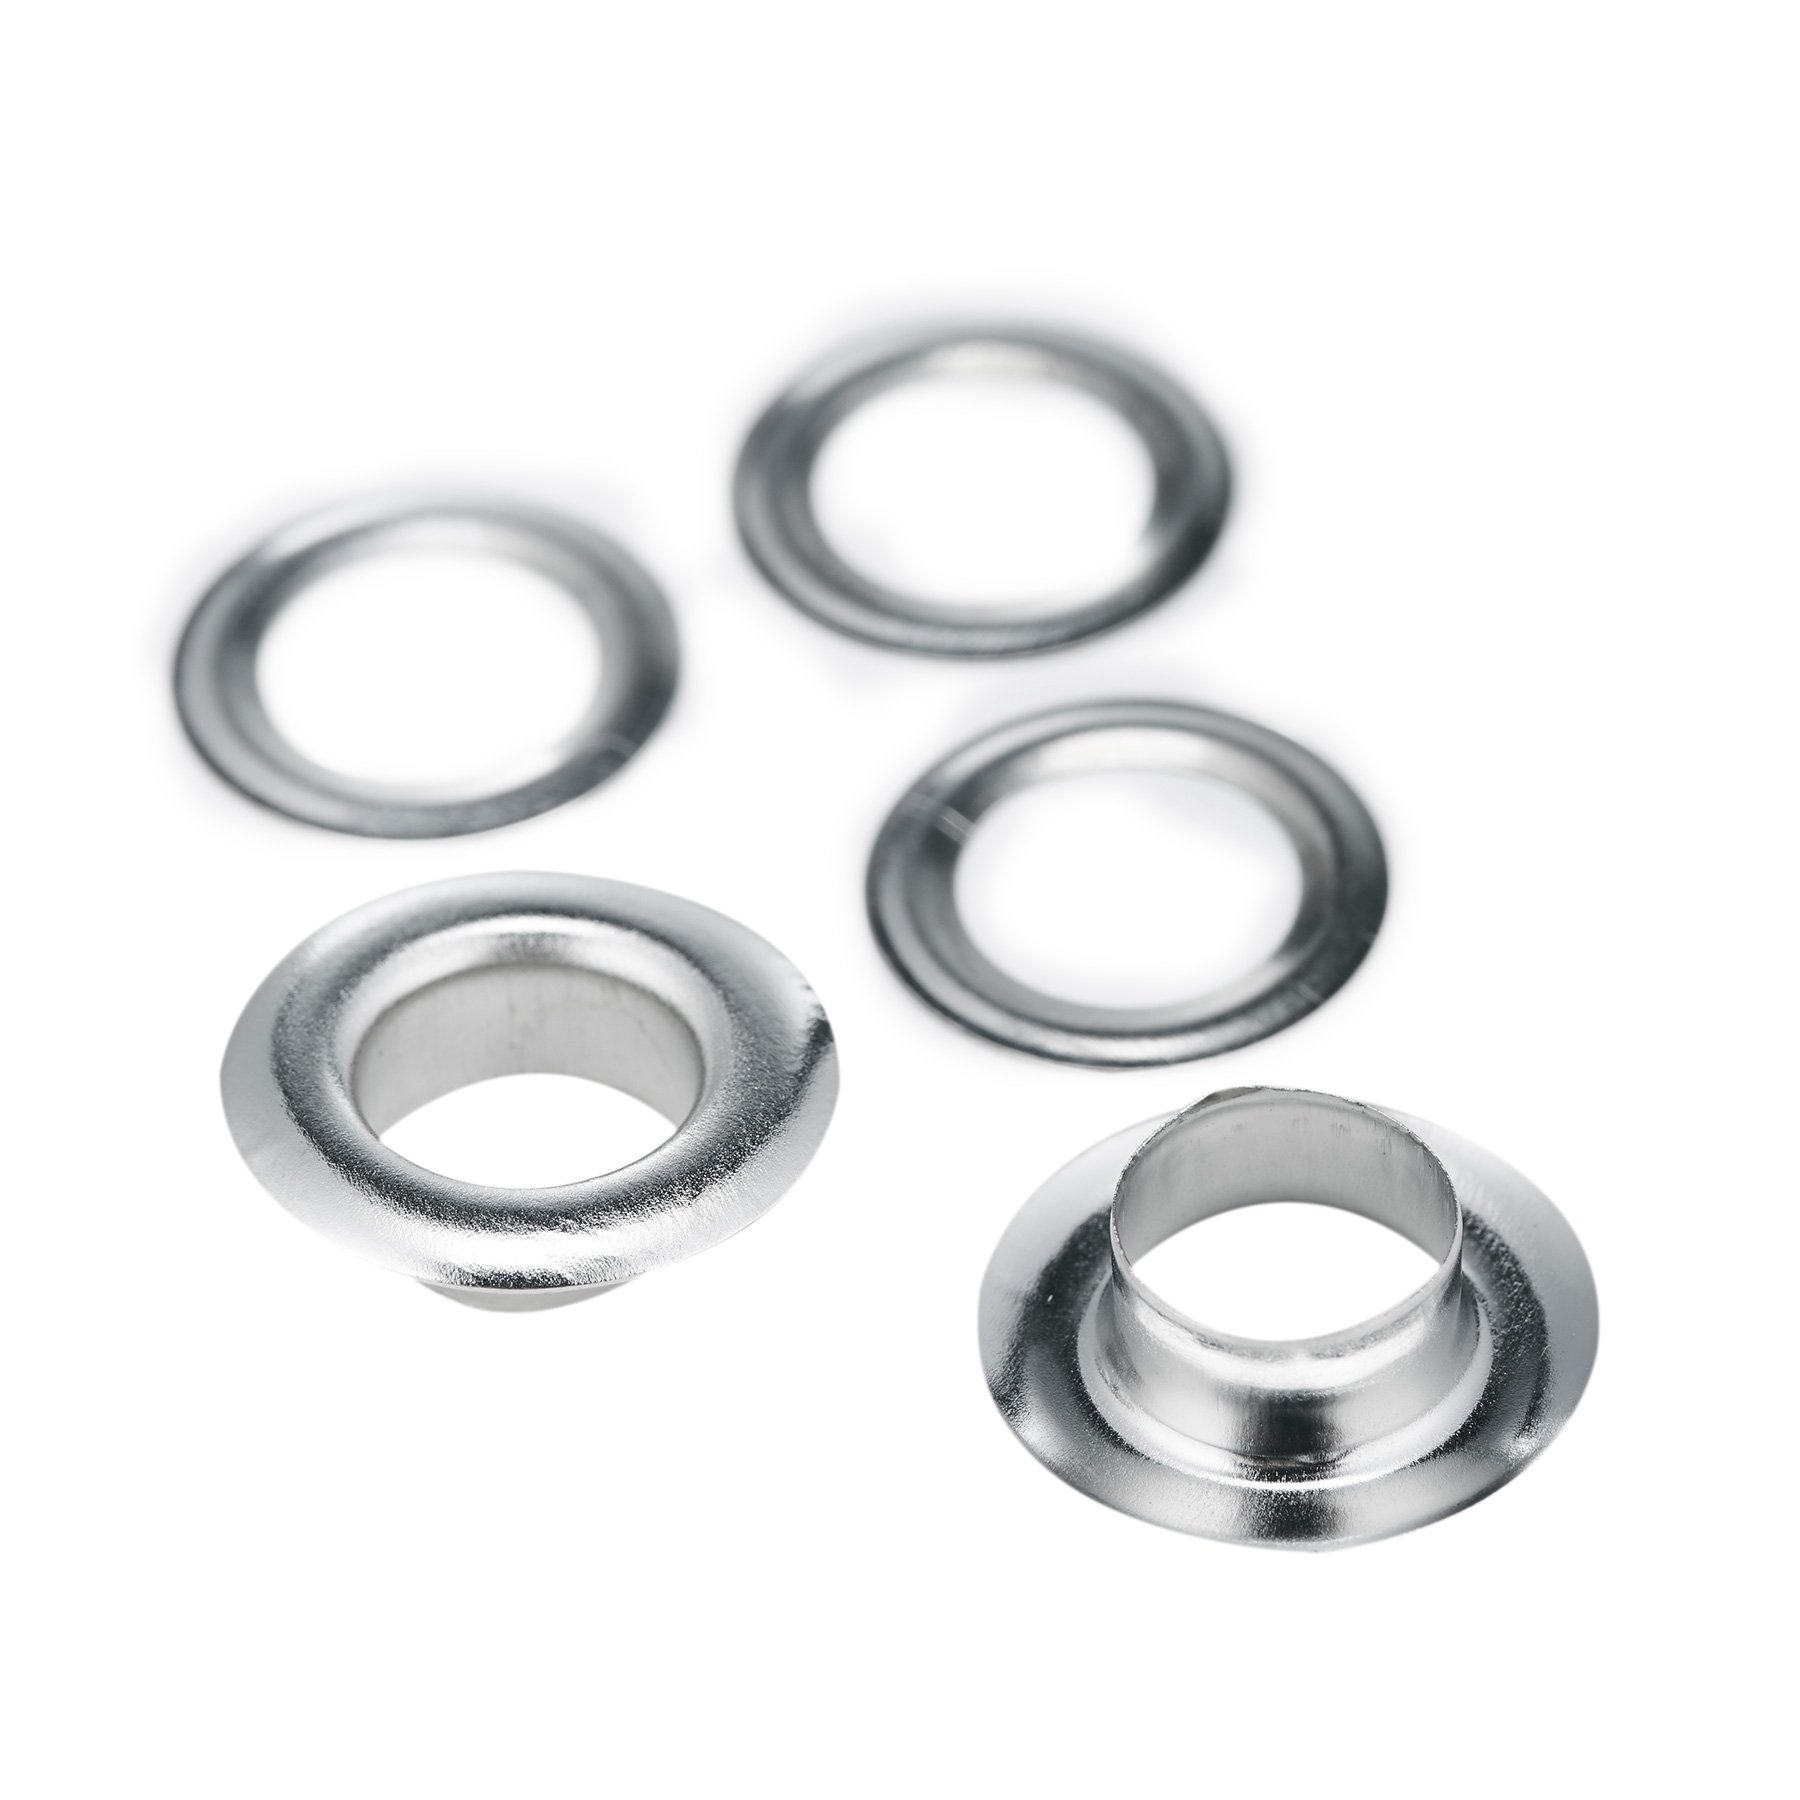 Pinty 1000 Grommets + 1000 Washers - Nickel Finish - #2 Size, 3/8'' Eyelets by Pinty (Image #7)